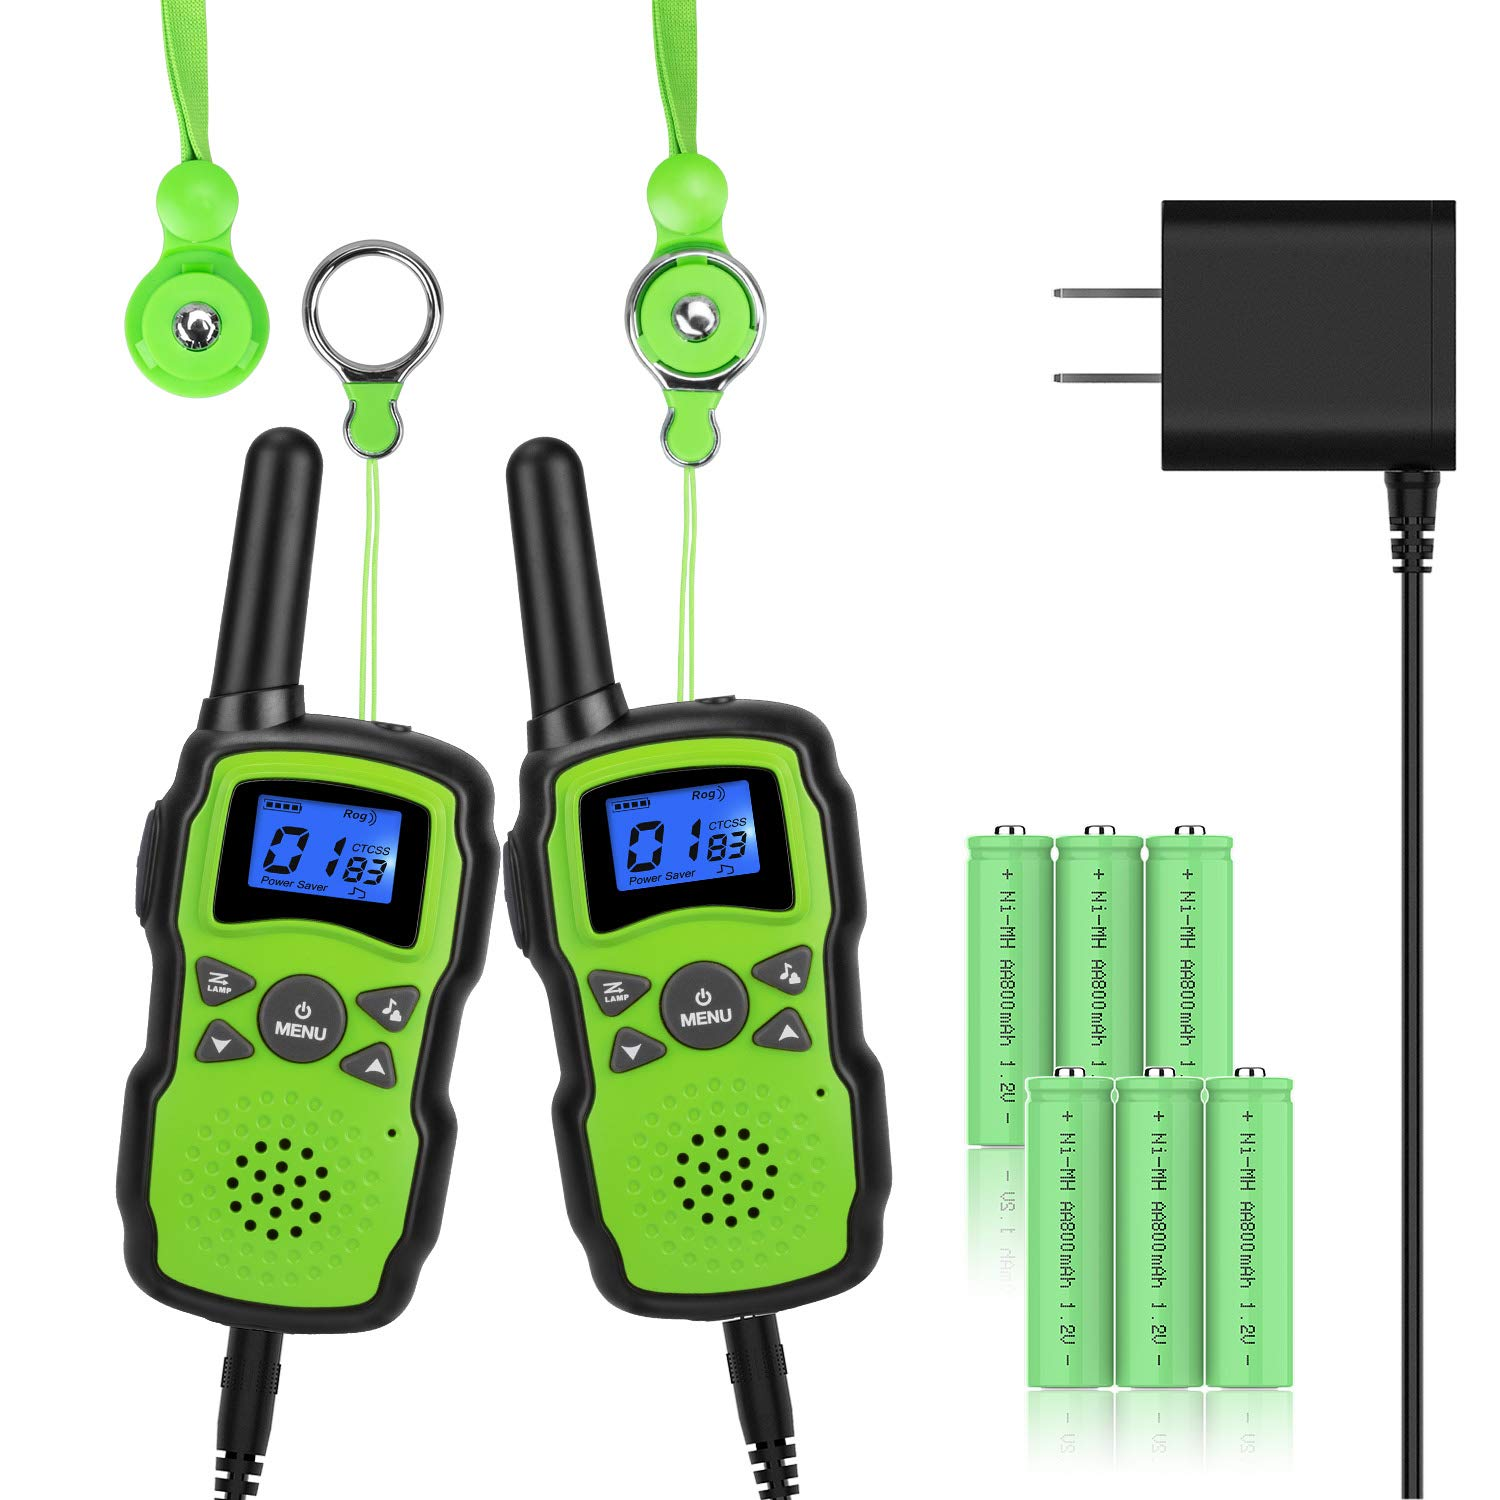 Wishouse 2 Rechargeable Walkie Talkies for Kids with Charger Battery, Two Way Radio Family Talkabout for Adult Cruise Ship Long Range, Outdoor Camping Hiking Fun Toy Birthday Gift for Girls Boys Green by Wishouse (Image #2)